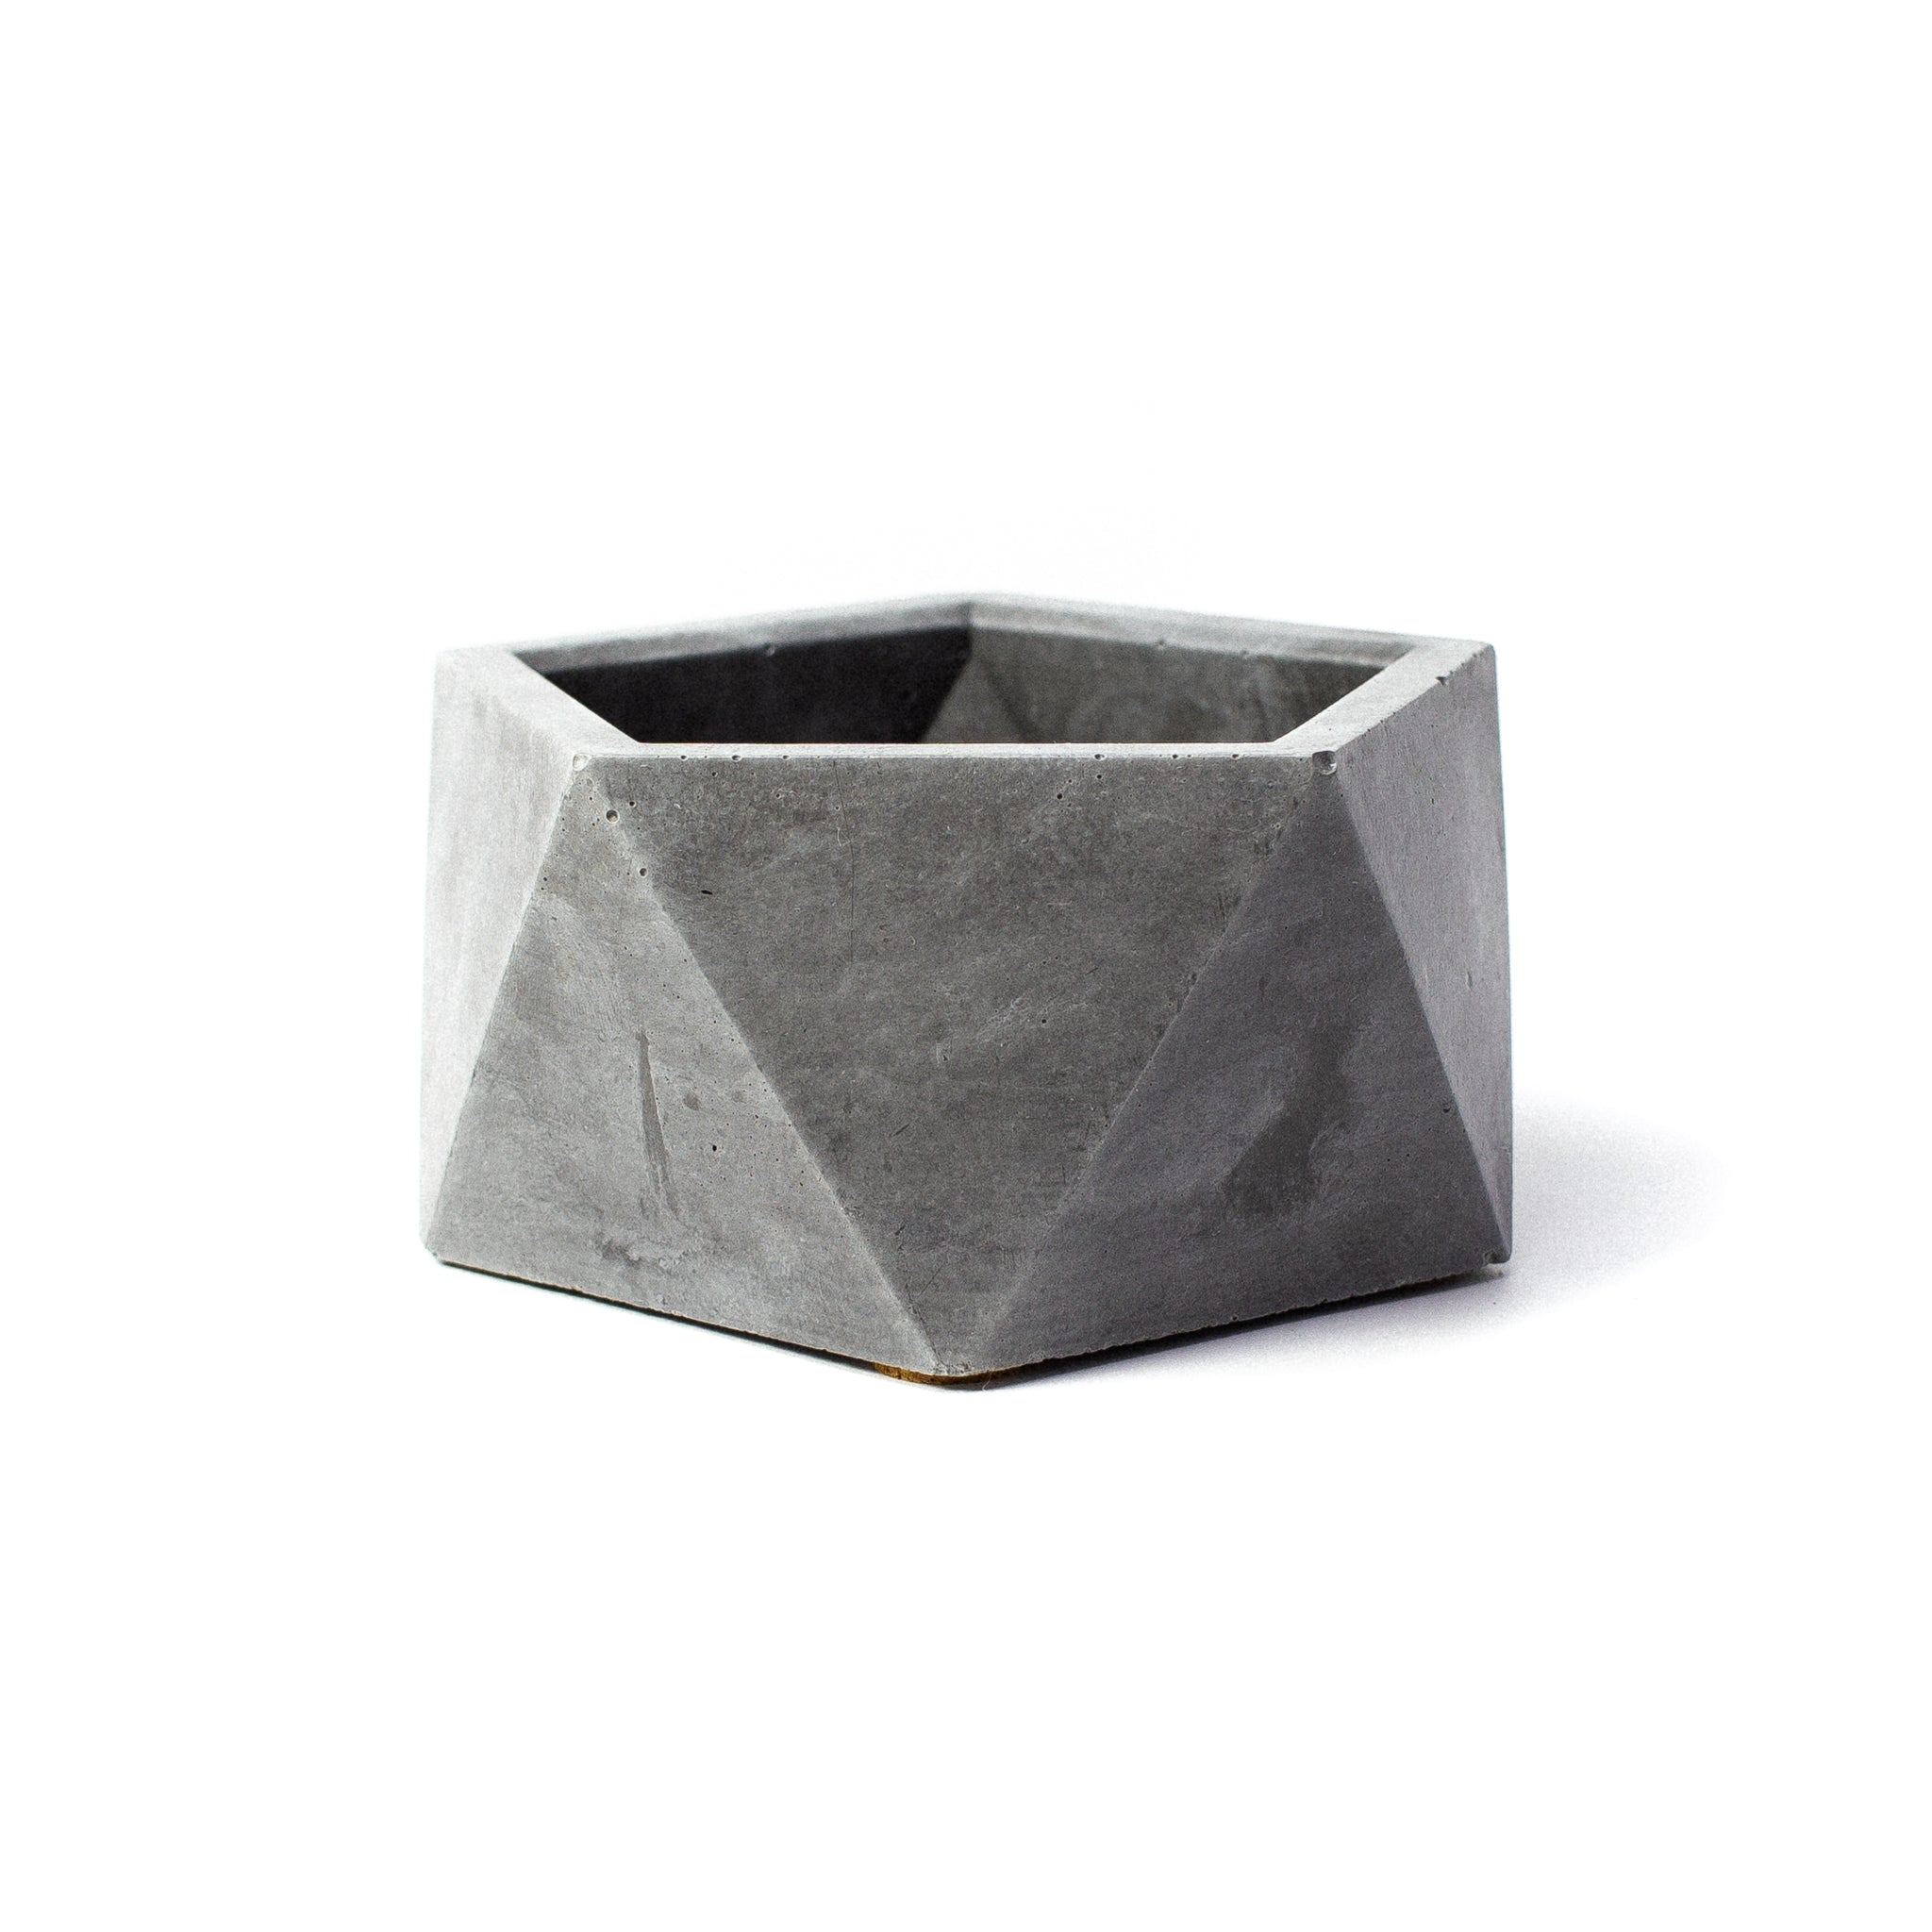 Concrete Icosahedron Planter: Small